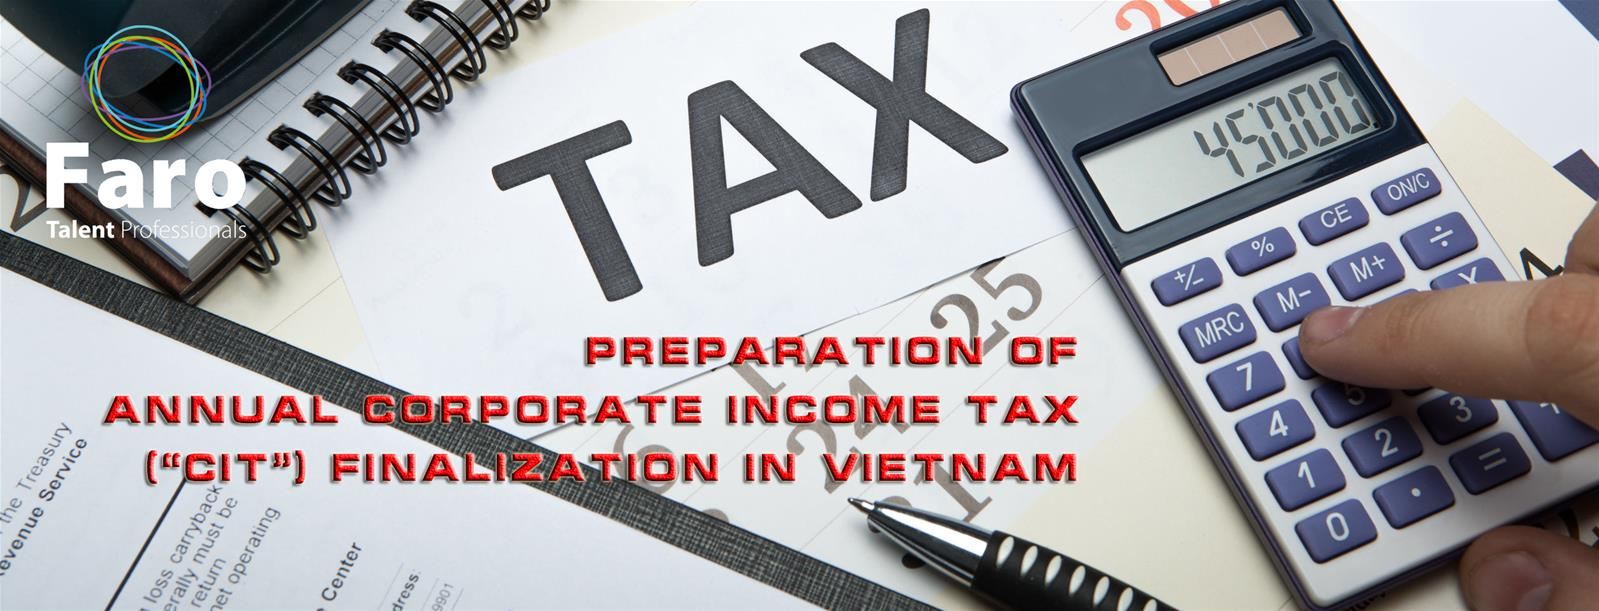 "Brief Outline for Preparation of Annual Corporate Income Tax (""CIT"") Finalization in Vietnam"